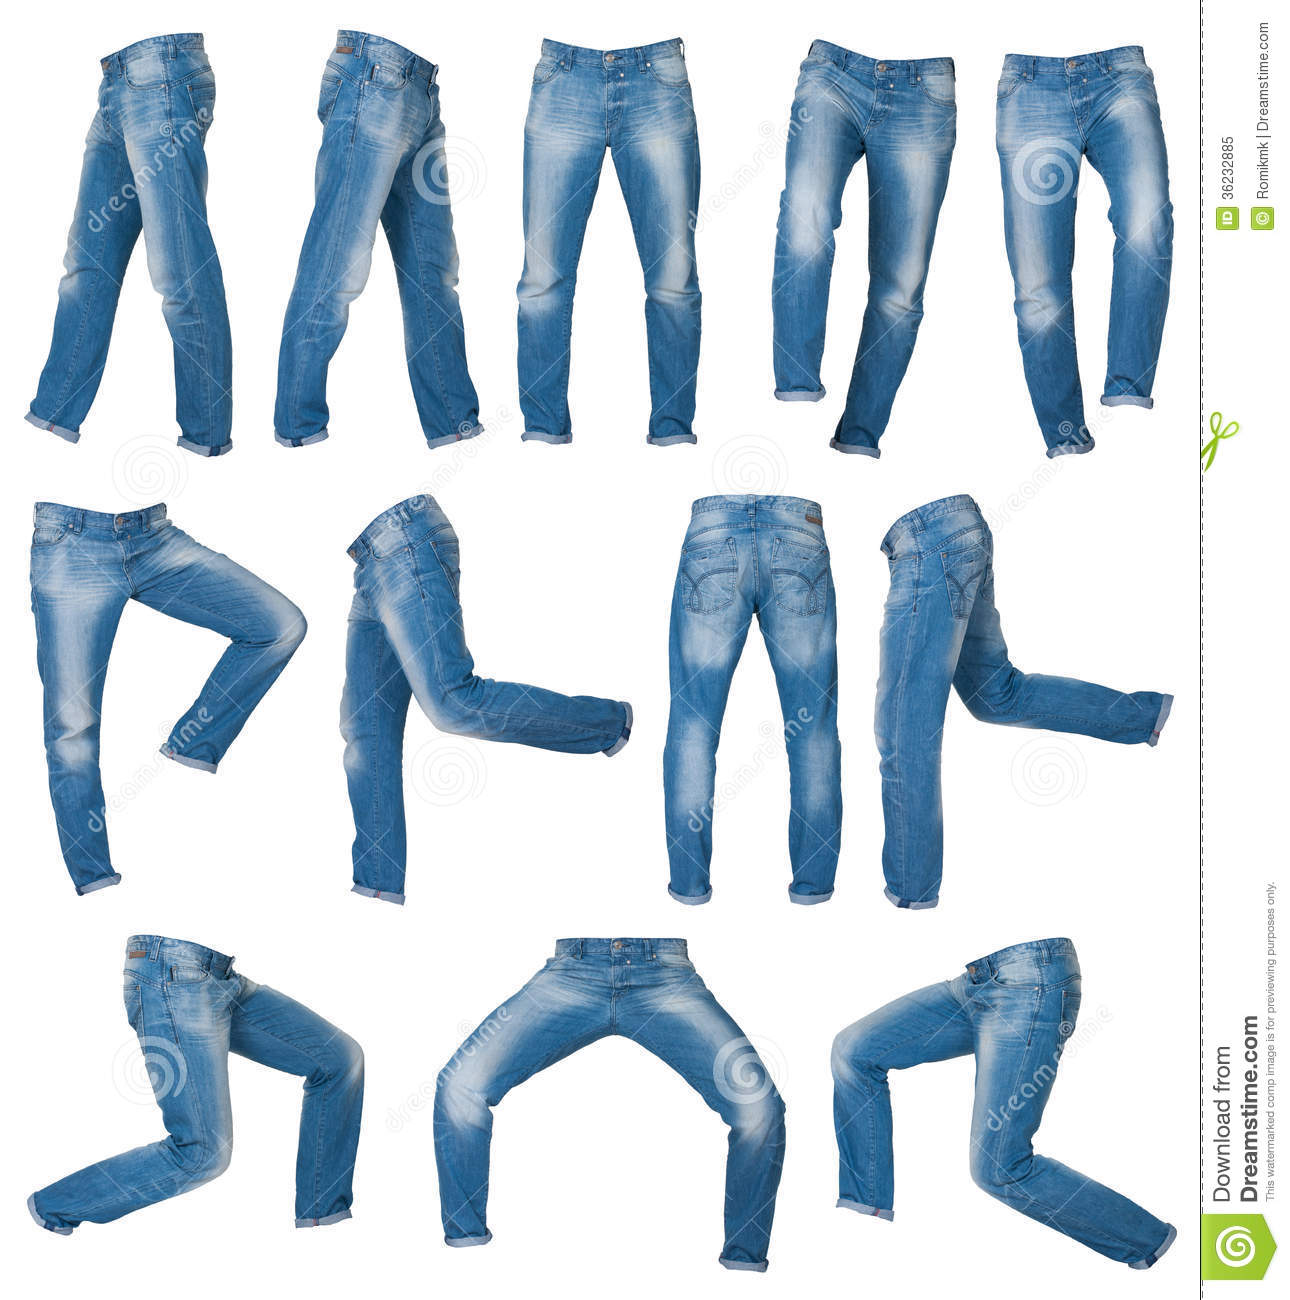 mens jeans stock image